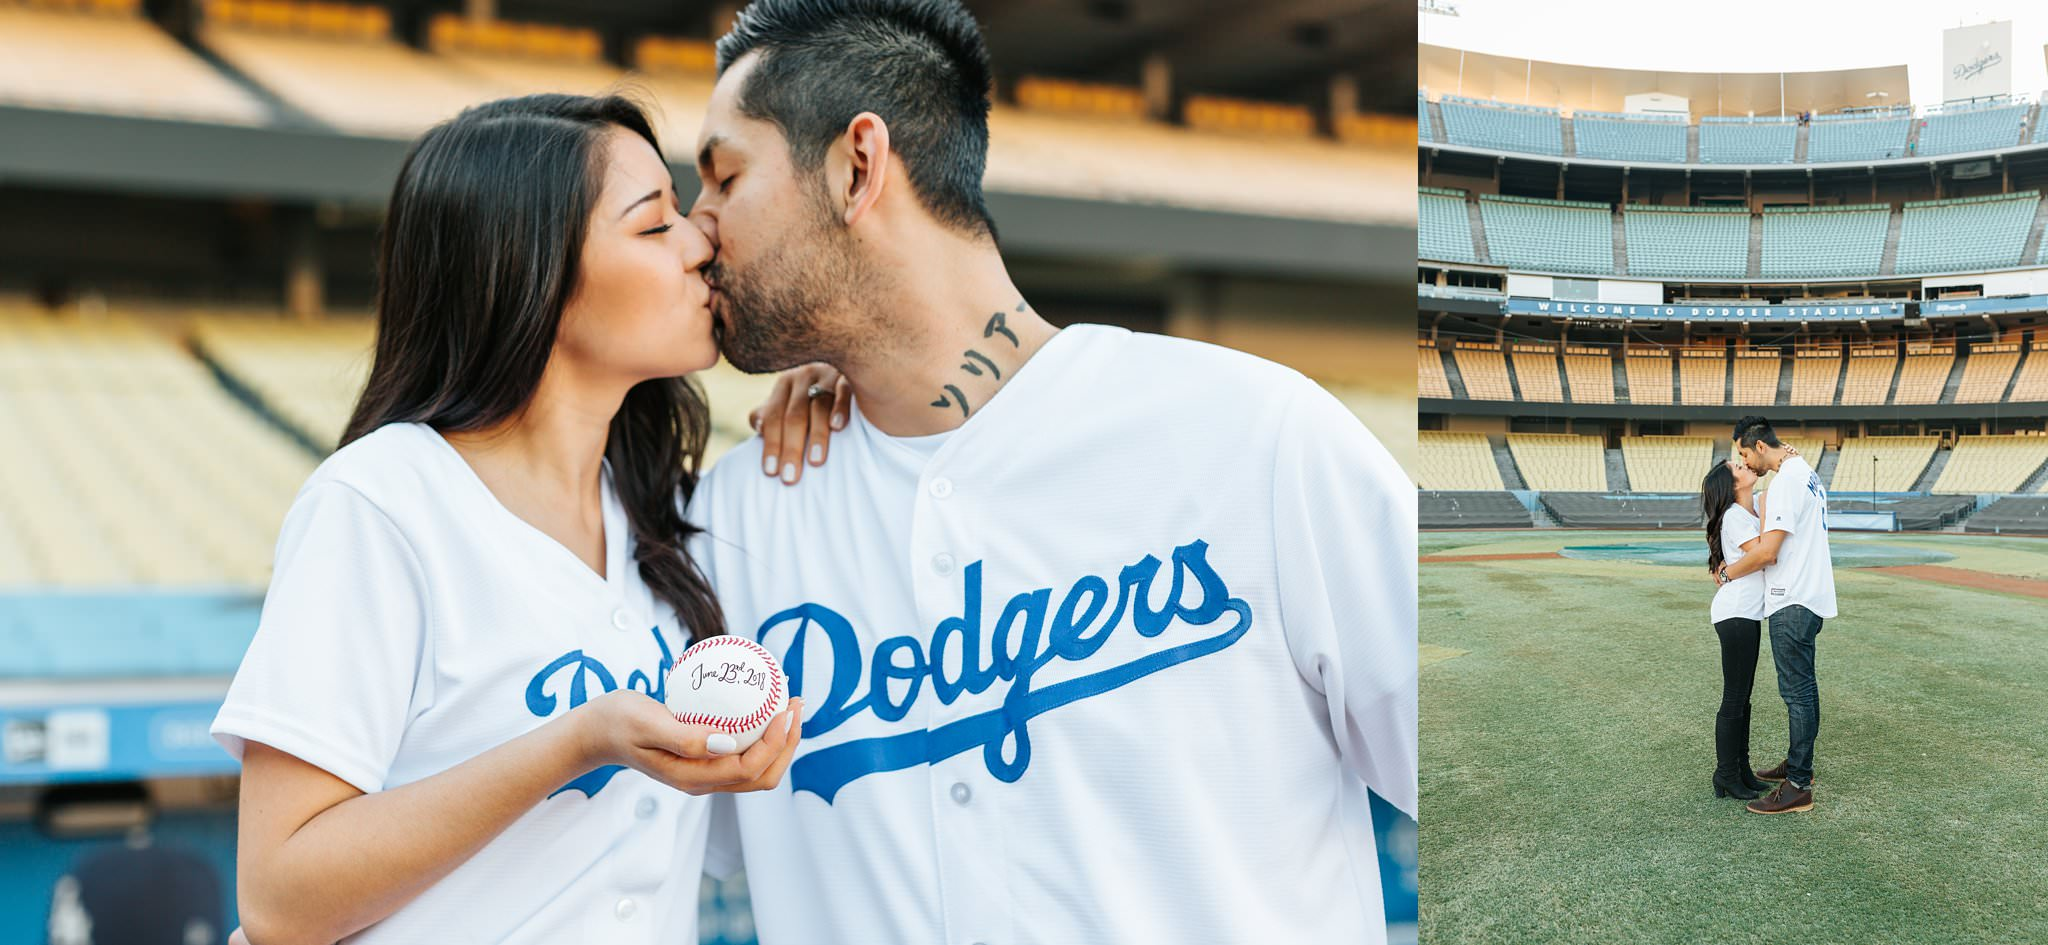 Lets go Dodgers - Dodger fan engagement session - Los Angeles - http://brittneyhannonphotography.com